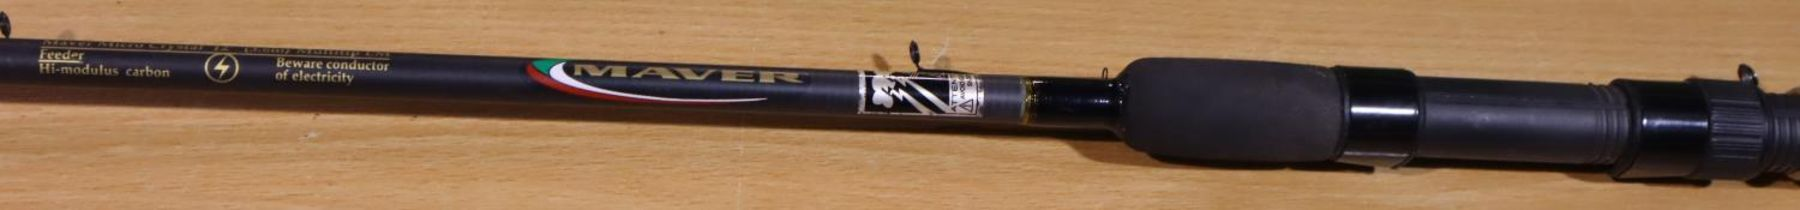 Mauer 12ft tip rod (one tip present only). P&P Group 3 (£25+VAT for the first lot and £5+VAT for